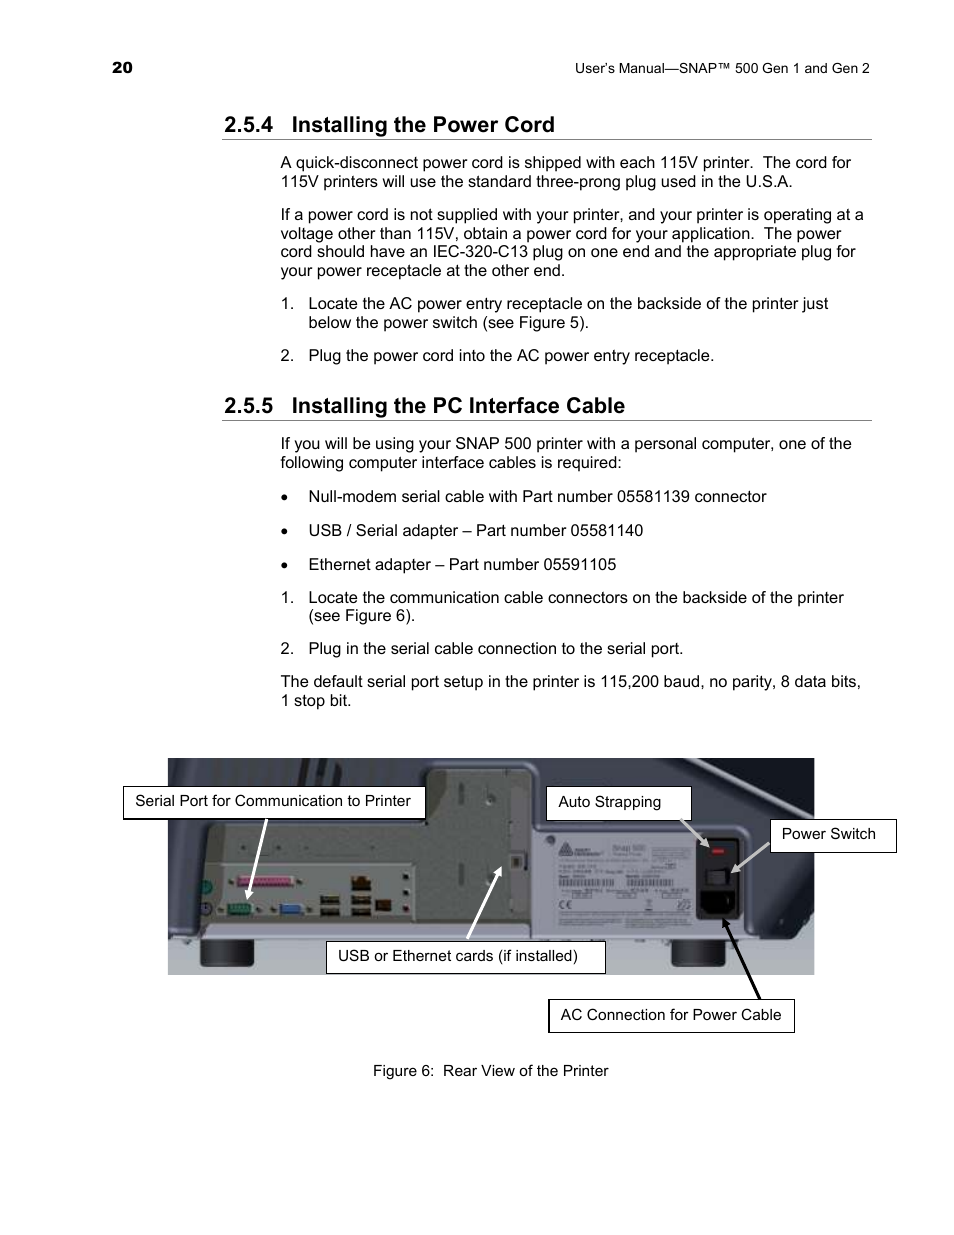 4 Installing The Power Cord 5 Pc Interface Cable Serial Wiring Avery Dennison Snap 500 User Manual Page 20 136